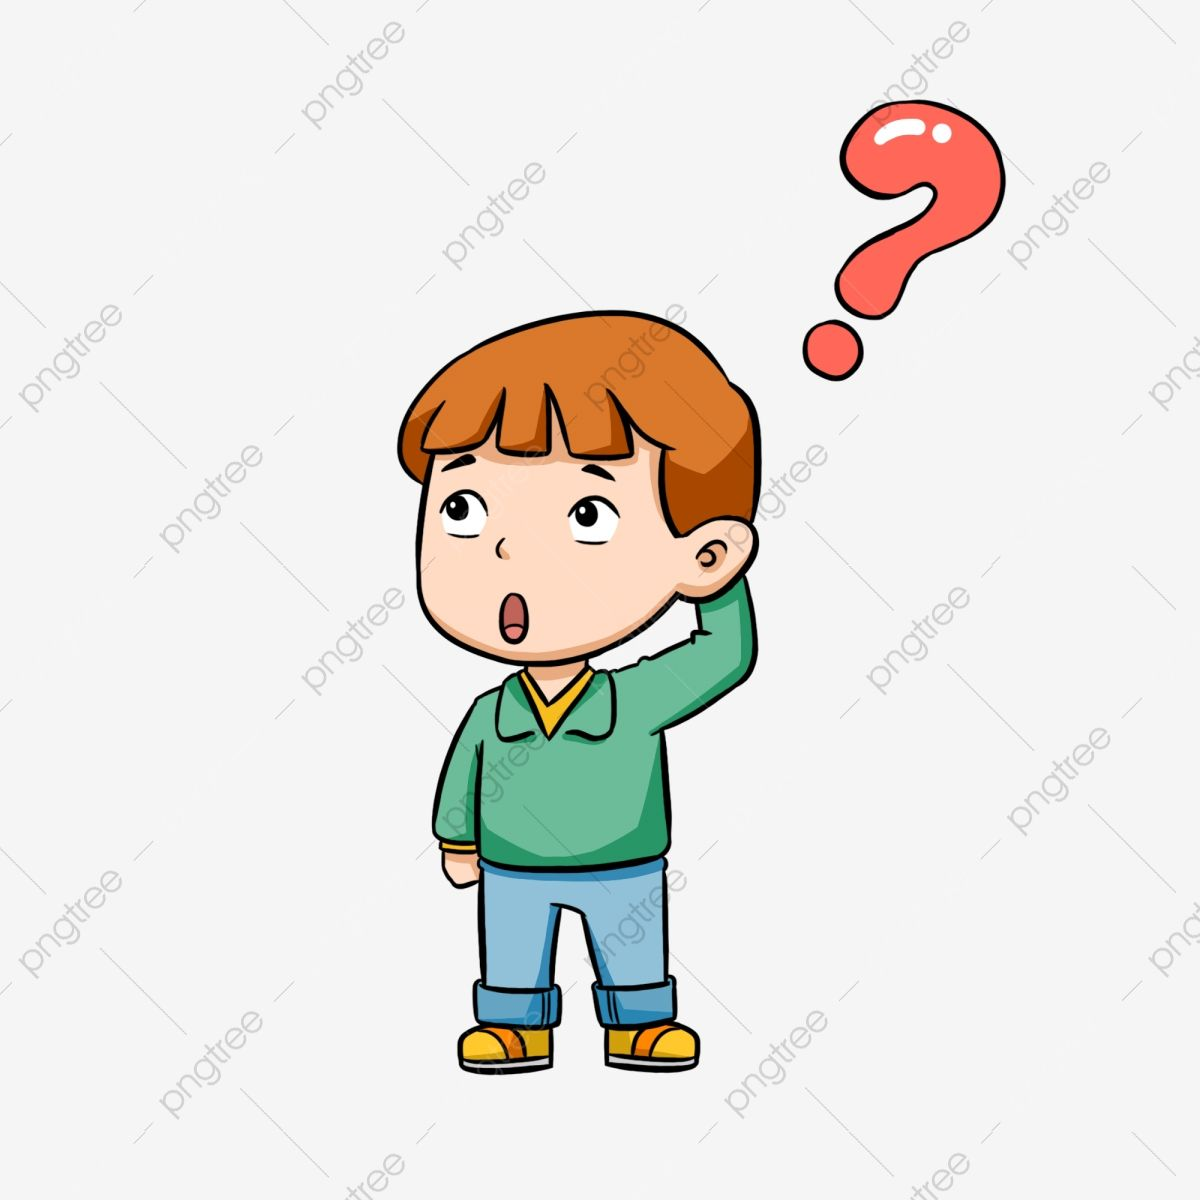 Hand Drawn Cartoon Boy Question Mark Free Illustration Boy Clipart Confused Thinking Problem Png Transparent Clipart Image And Psd File For Free Download Cartoon Question Mark How To Draw Hands Free